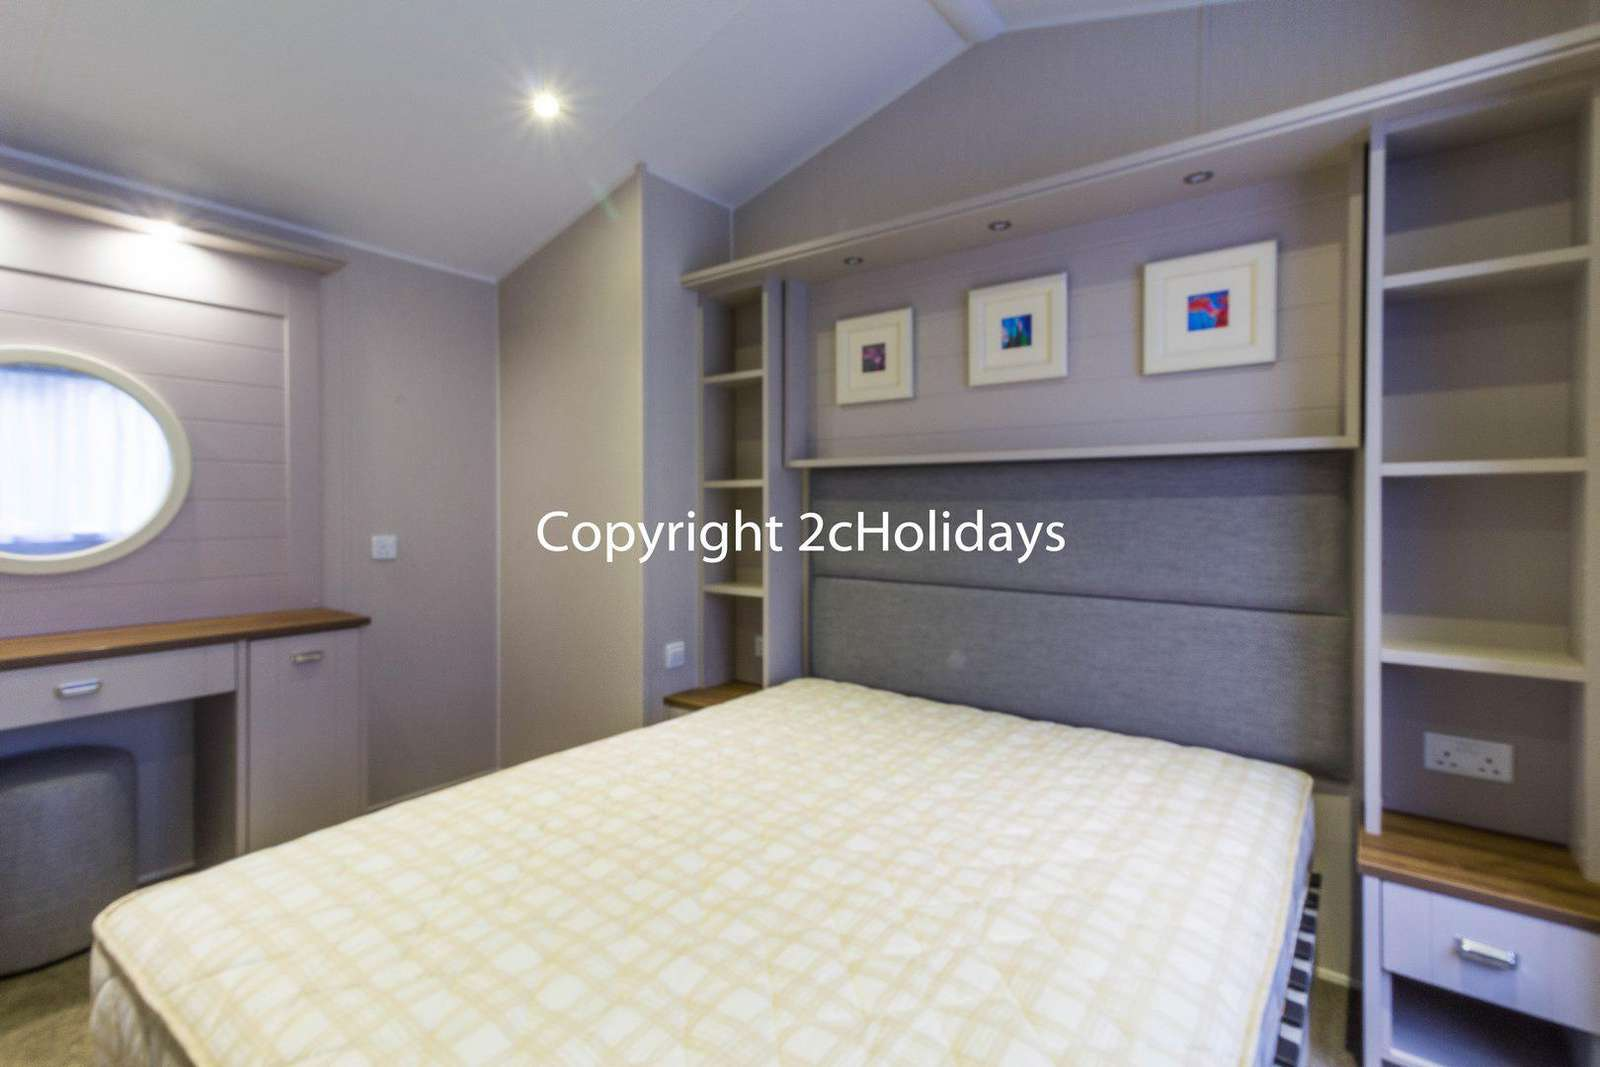 Why not book a last minute break with 2cHolidays?